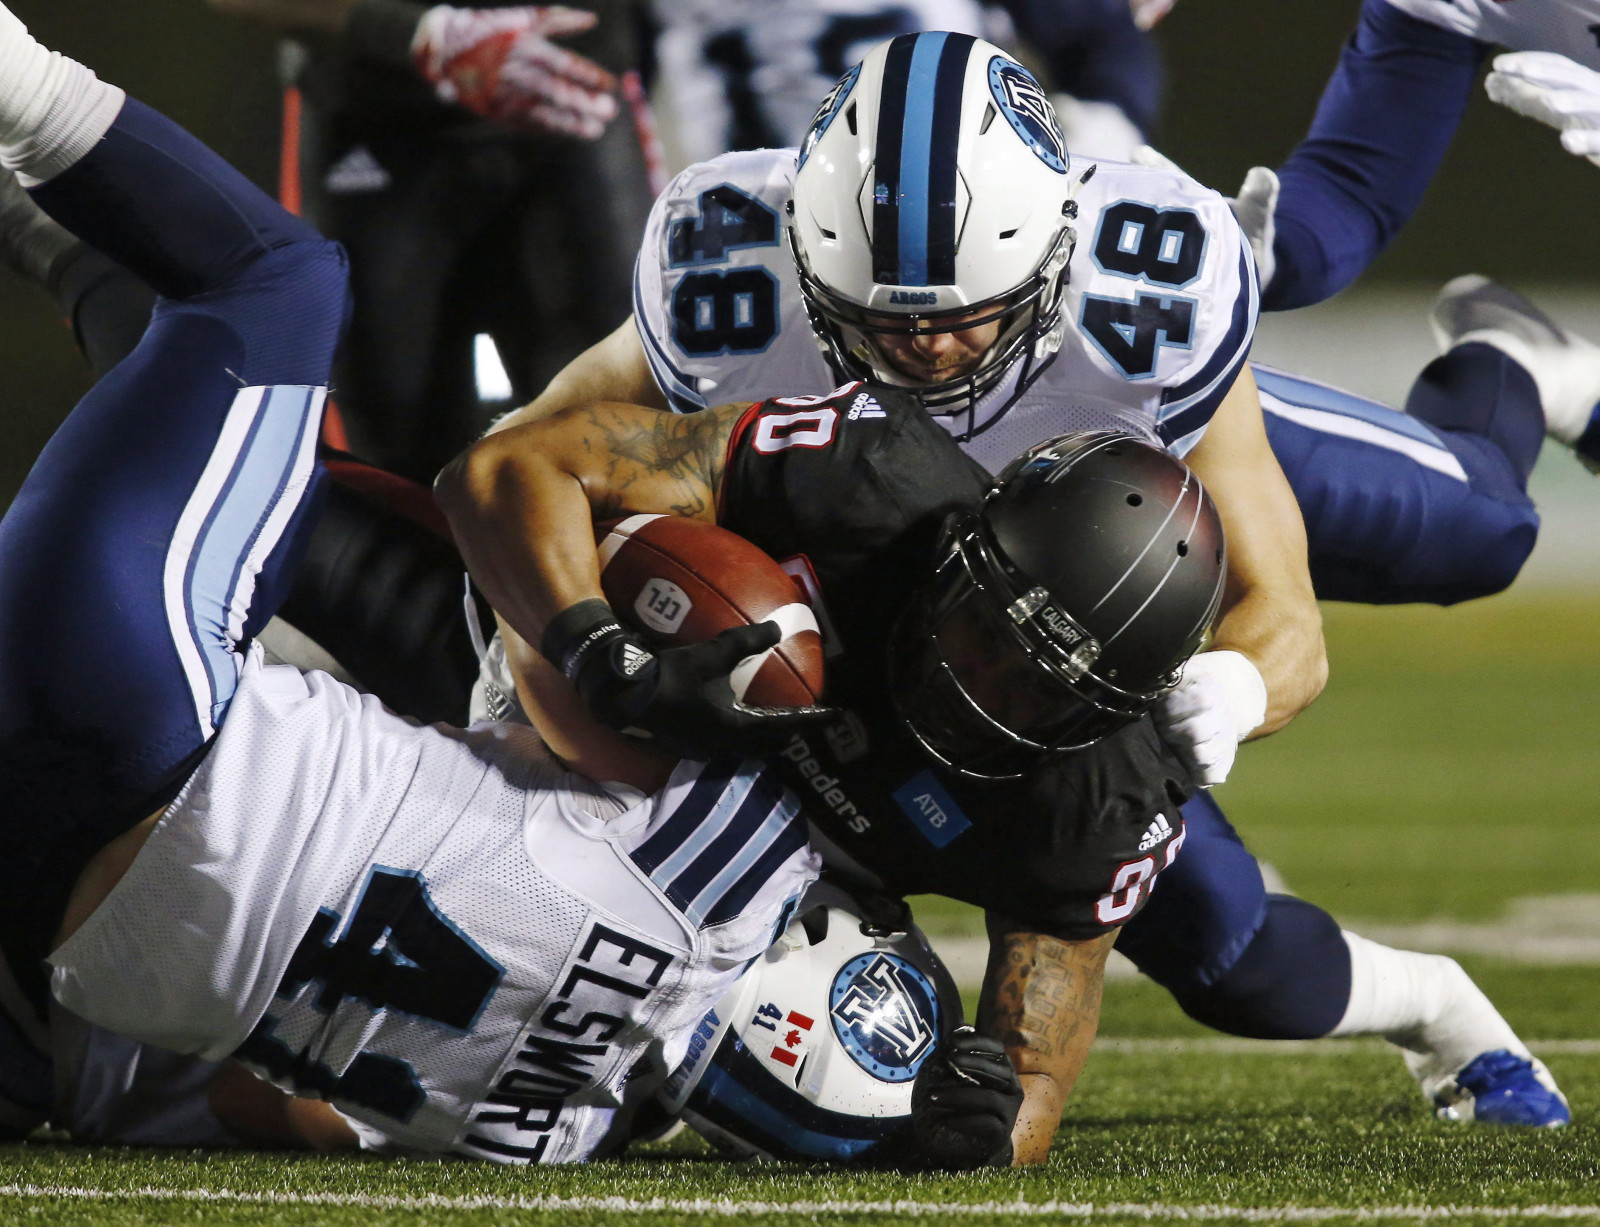 Toronto Argonauts' Thomas Miles, top, tackles Calgary Stampeders' Jamal Nixon during first half CFL football action in Calgary, Friday, Oct. 21, 2016.THE CANADIAN PRESS/Jeff McIntosh